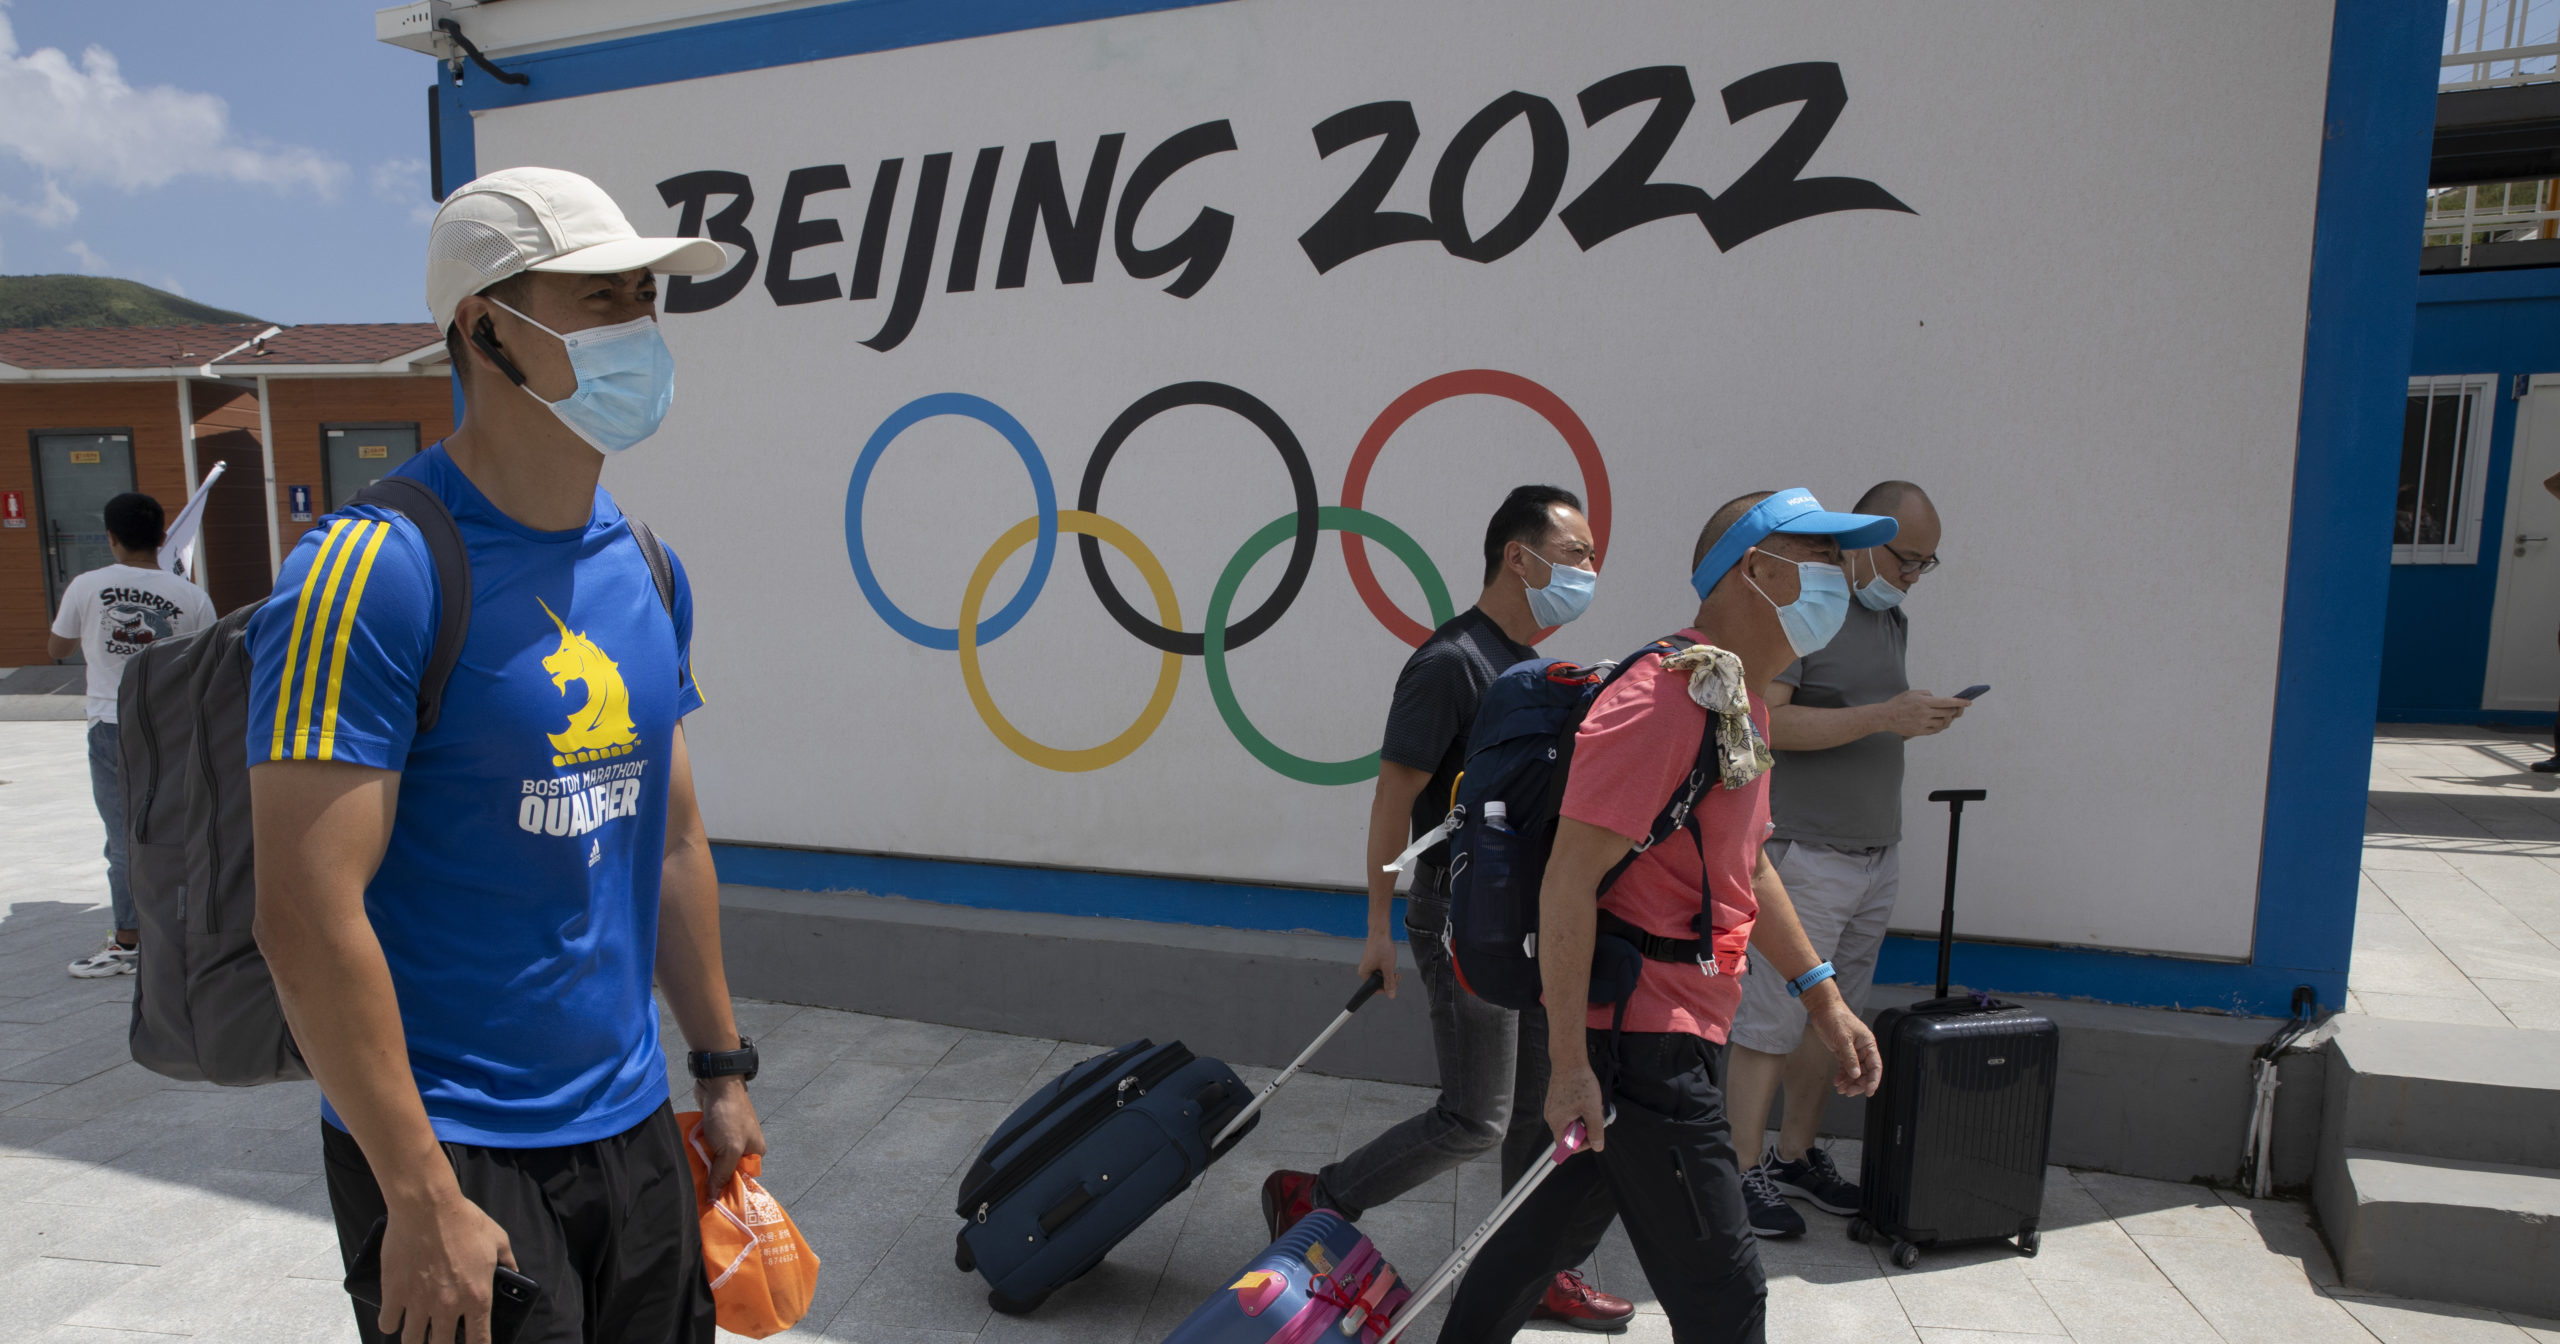 Visitors to Chongli, one of the venues for the Beijing 2022 Winter Olympics, walk by the Olympics logo on Aug. 13, 2020. China is host to the 2022 Winter Olympics with rumblings of a boycott and calls to remove the games from Beijing because of widespread human rights violations.